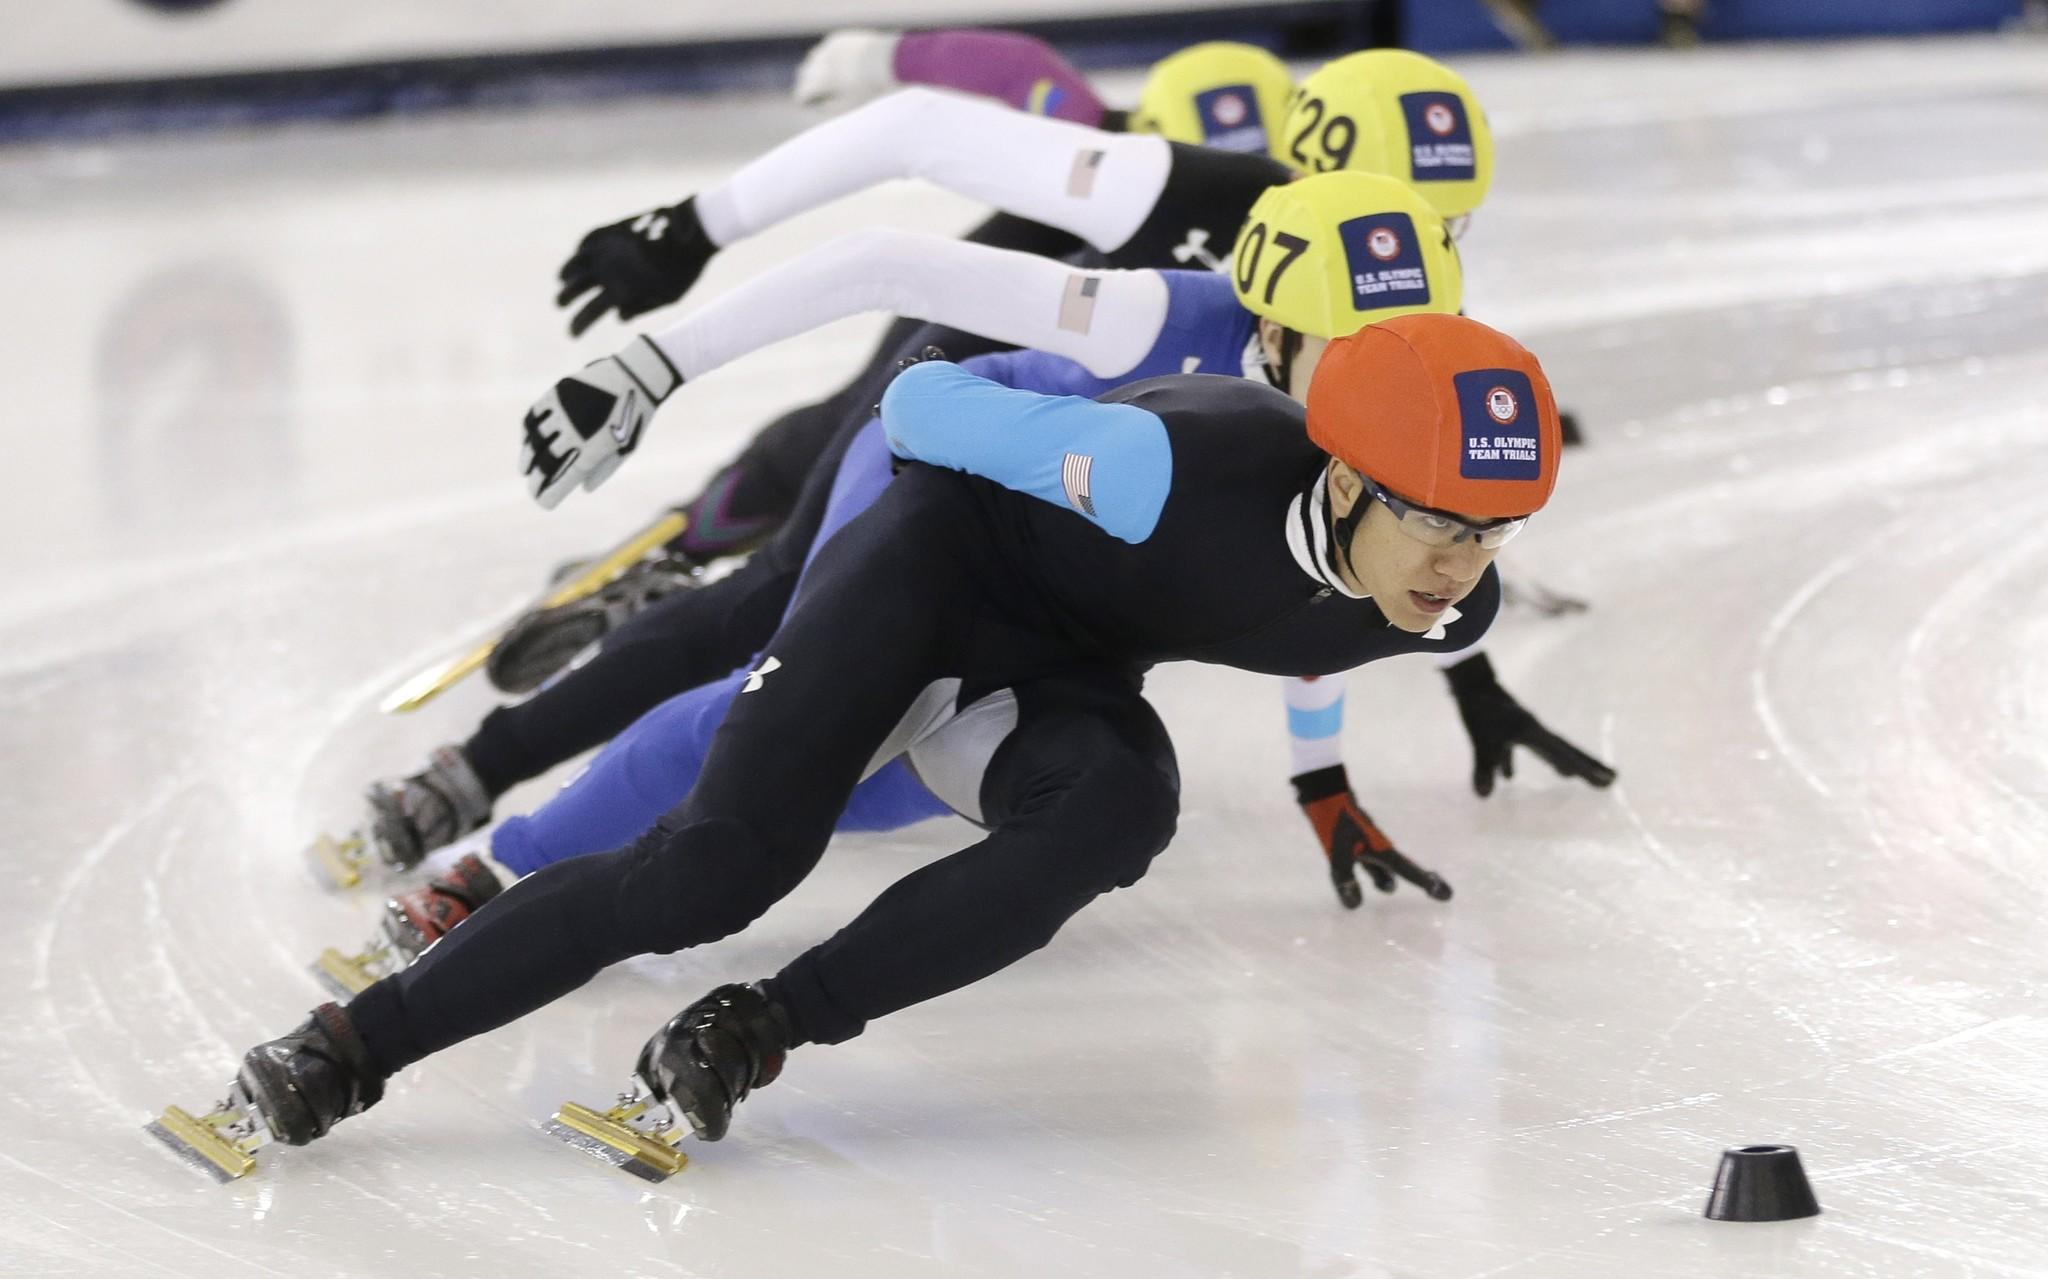 Short-track speedskaters like J.R. Celski, who leads a 1,000-meter race during the U.S. Olympics trials, could soon compete against long-track skaters for big paydays on the international stage.